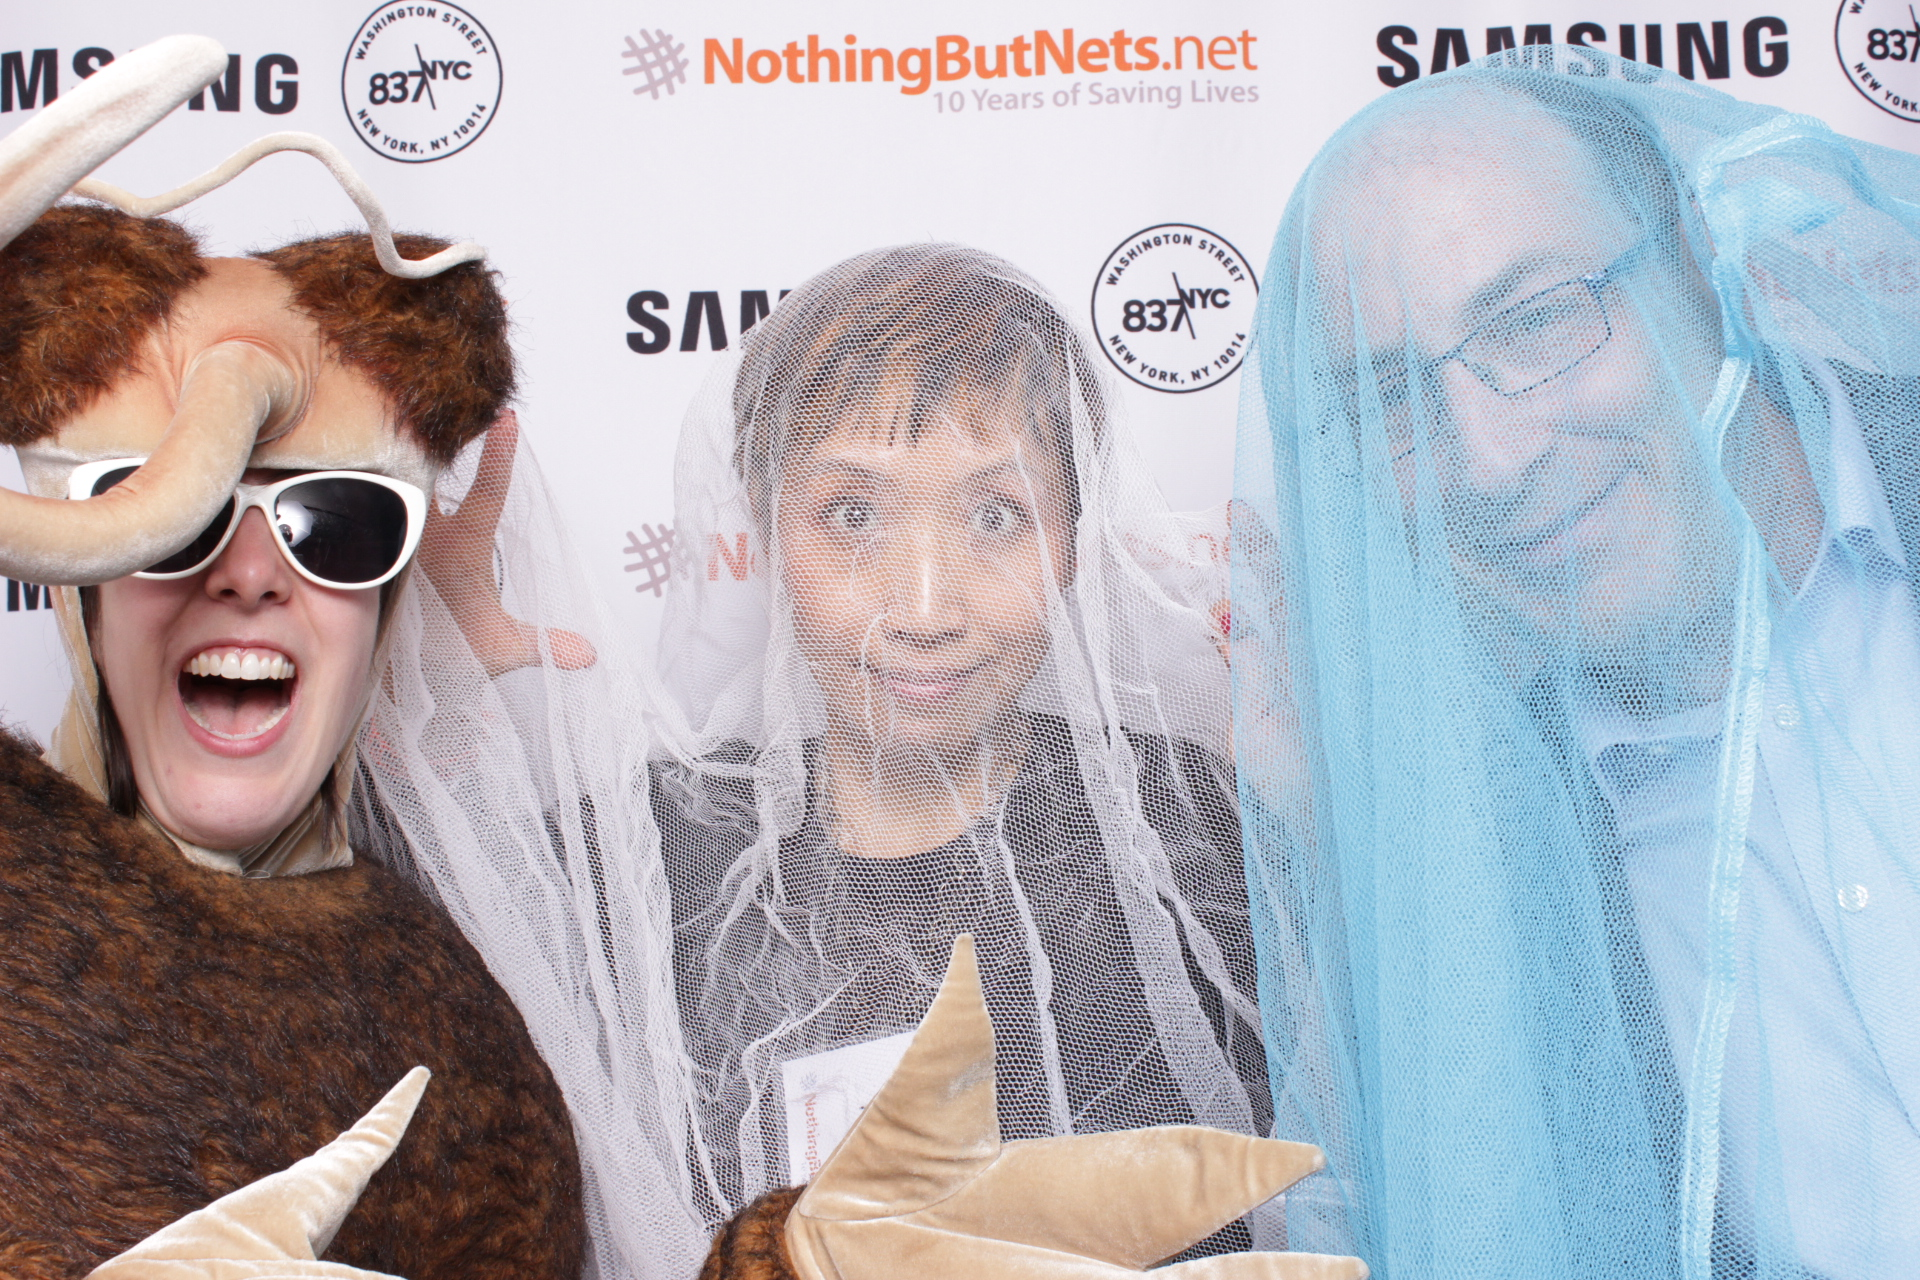 NOTHING BUT NETS | HOT PINK PHOTO BOOTH